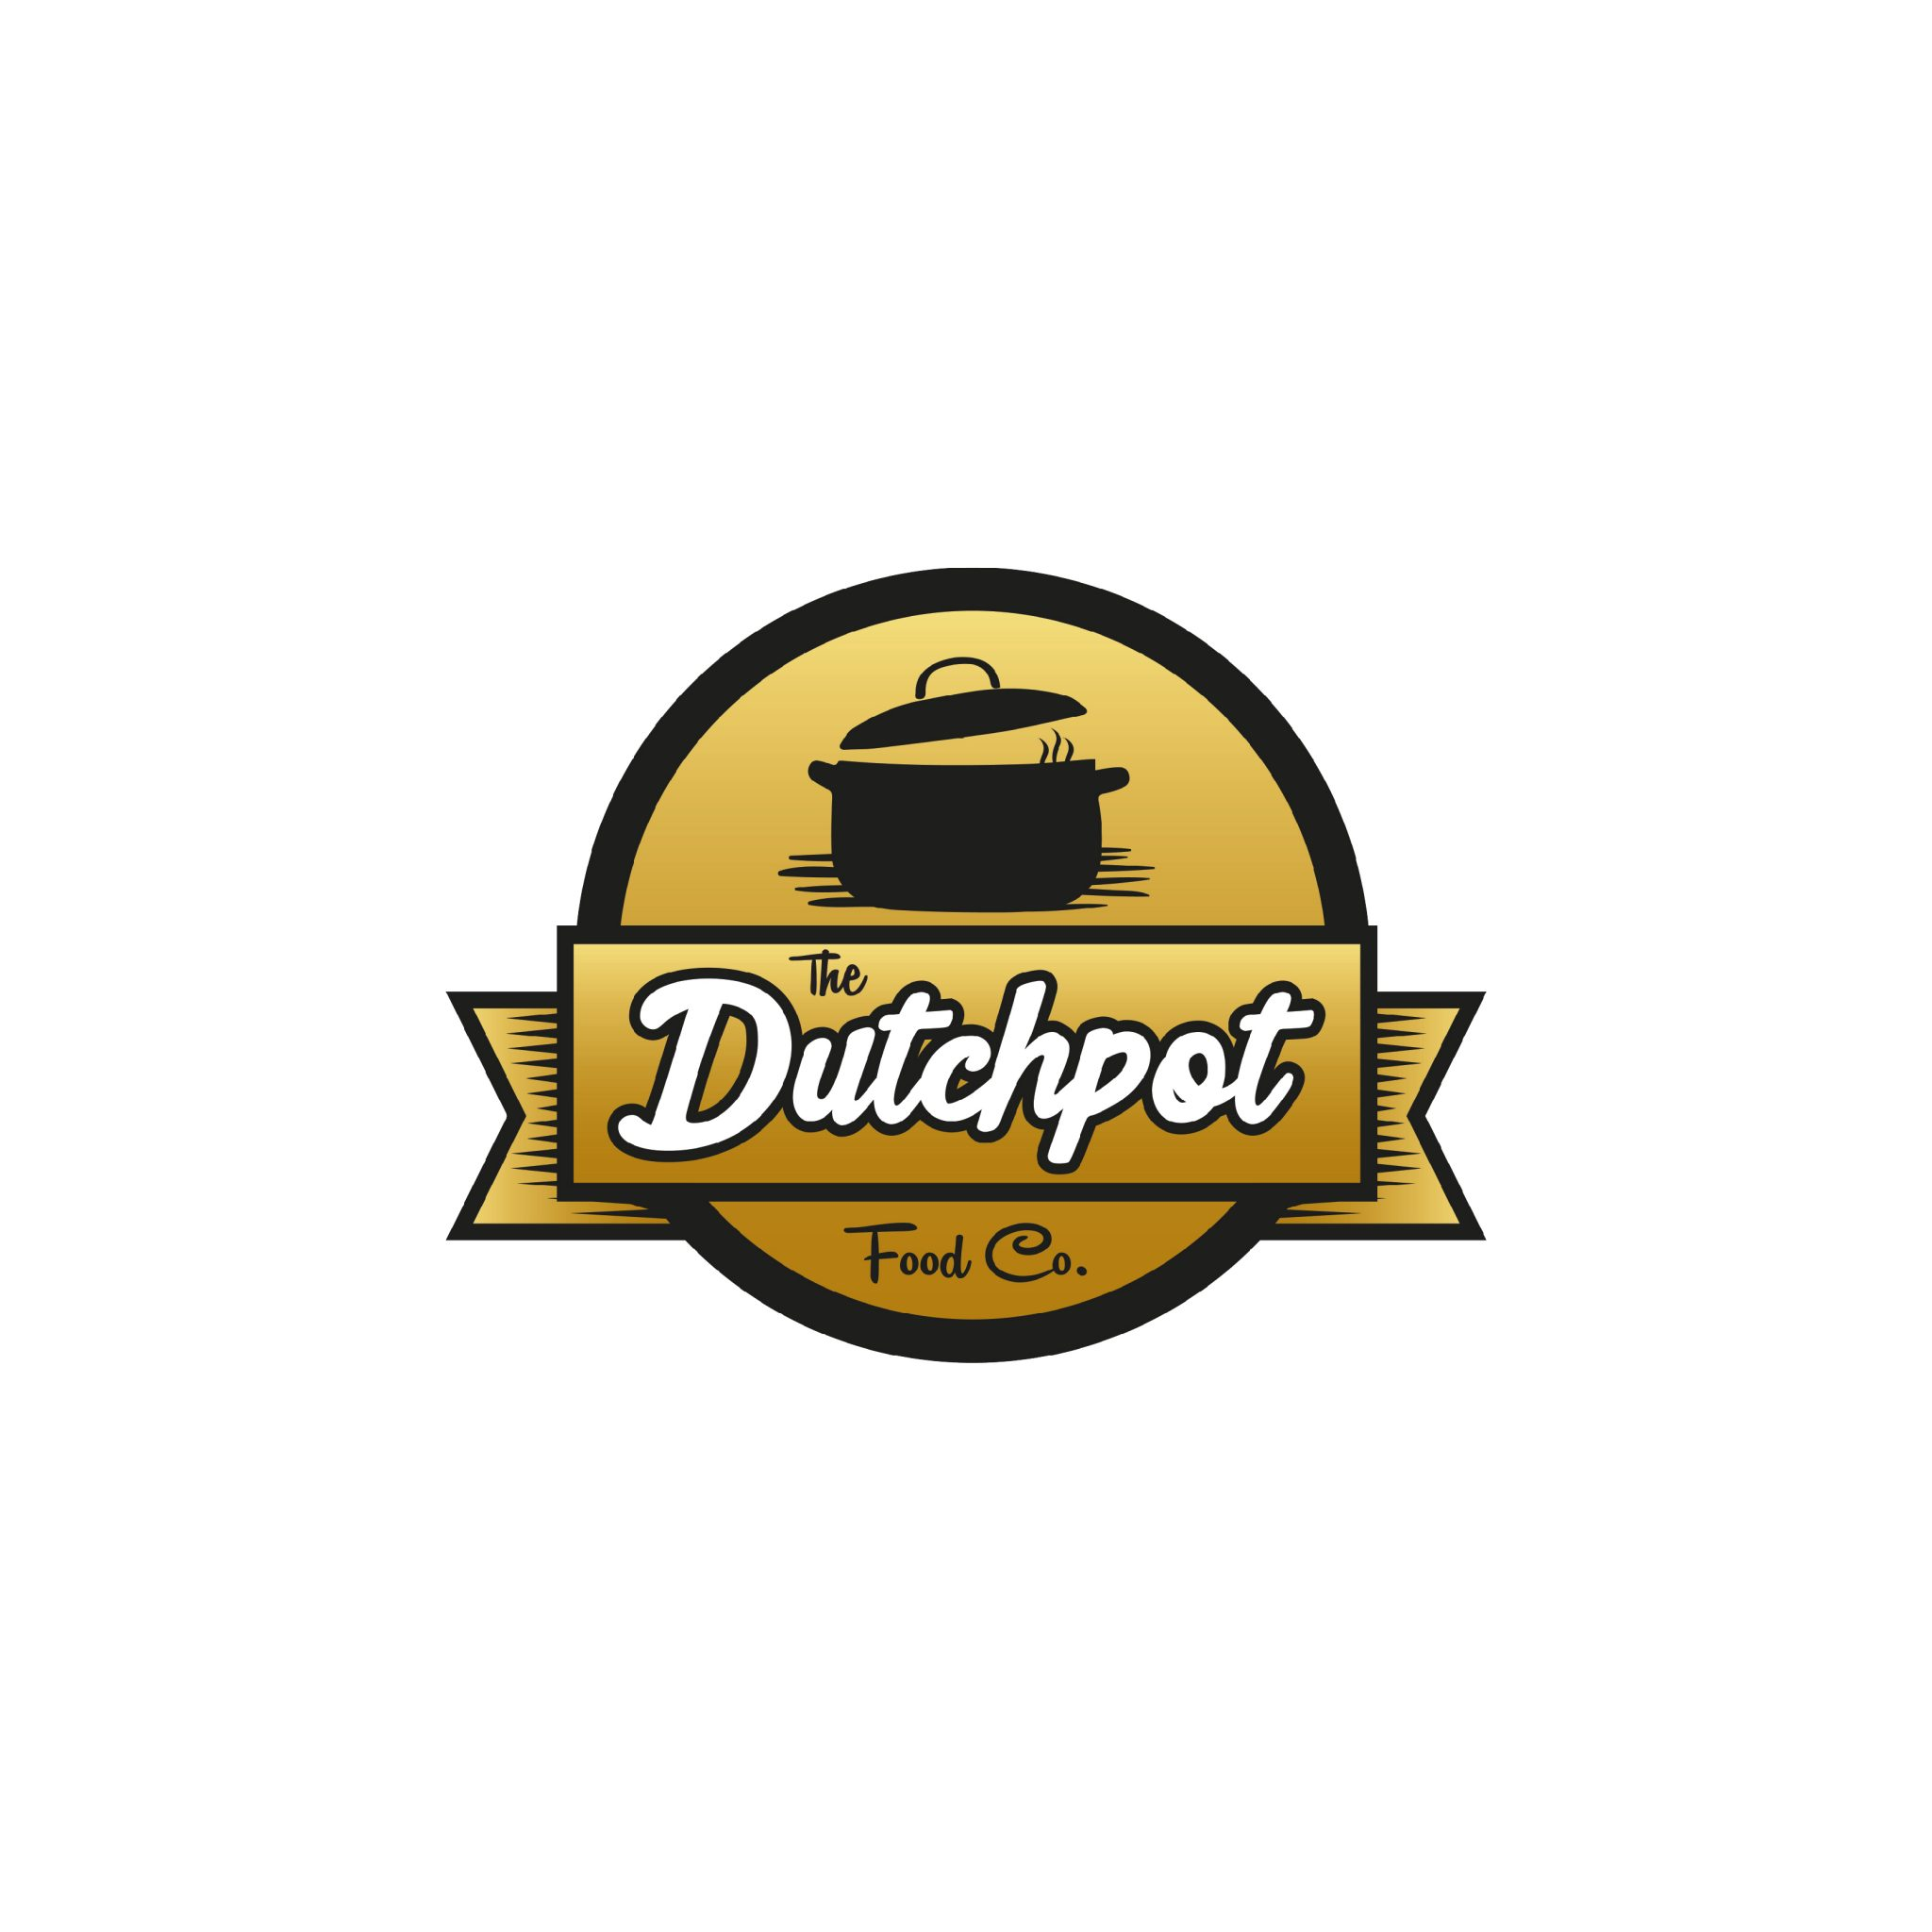 The Dutchpot Food Co